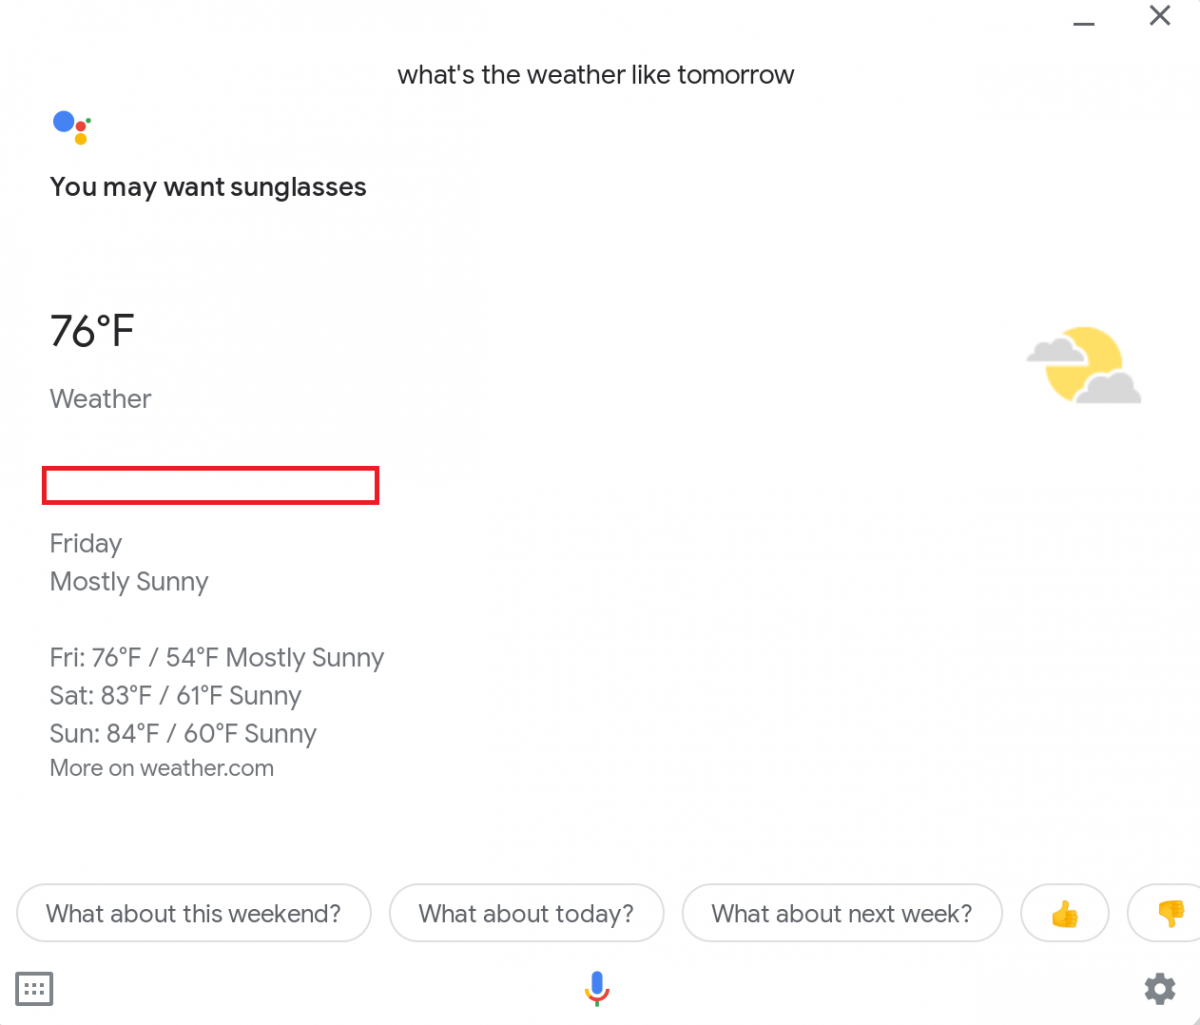 How to enable Google Assistant on a Chromebook